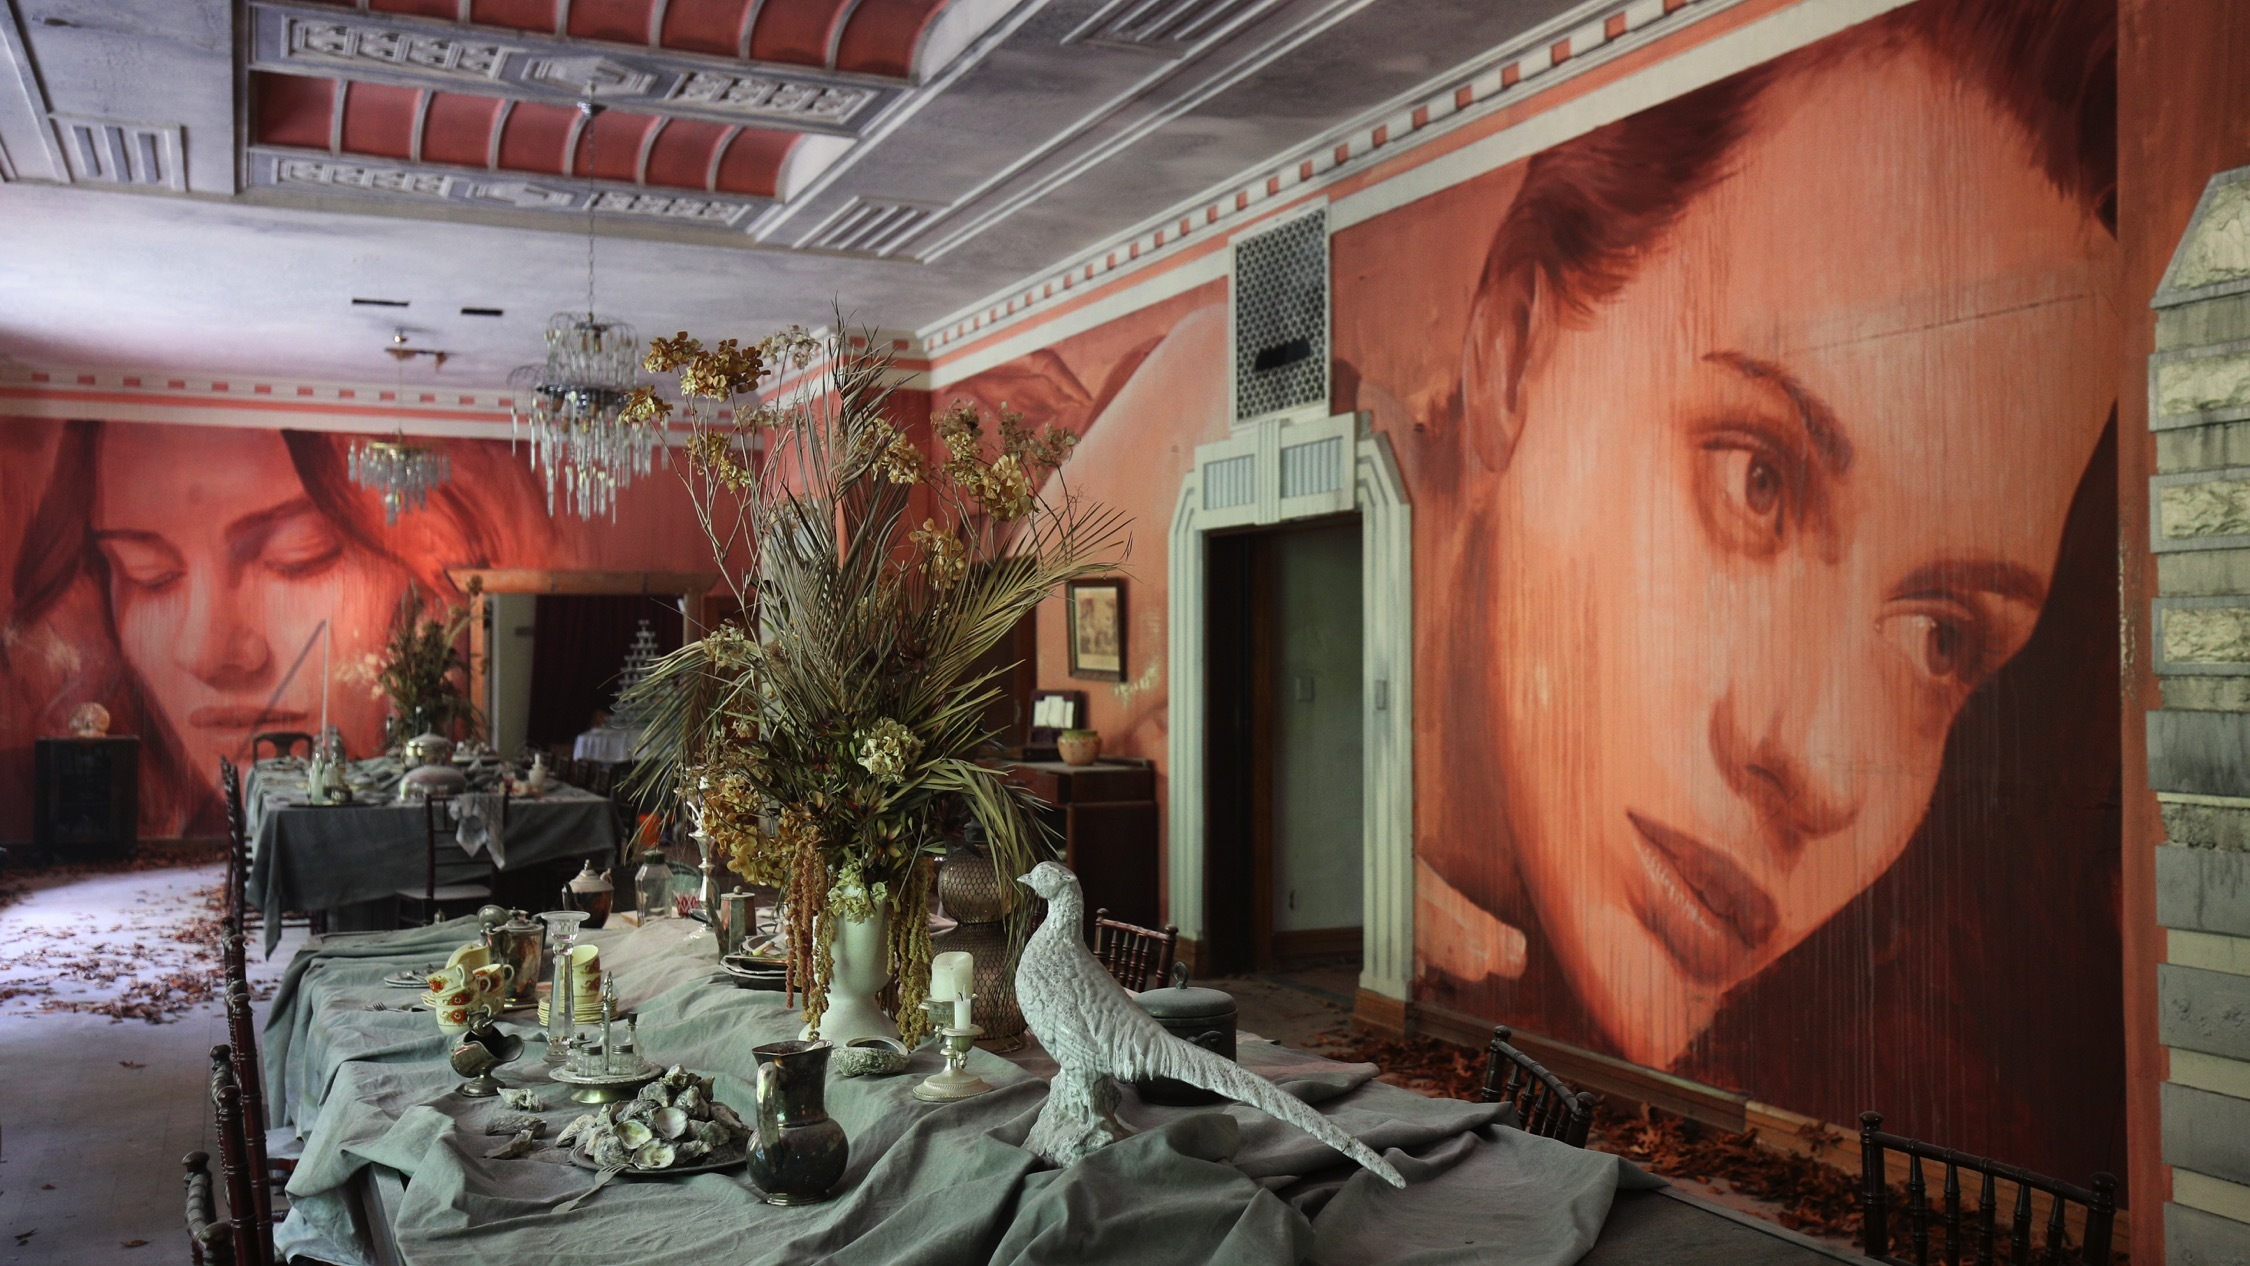 dining room Inside an abandoned house at Rone Street Art Exhibti